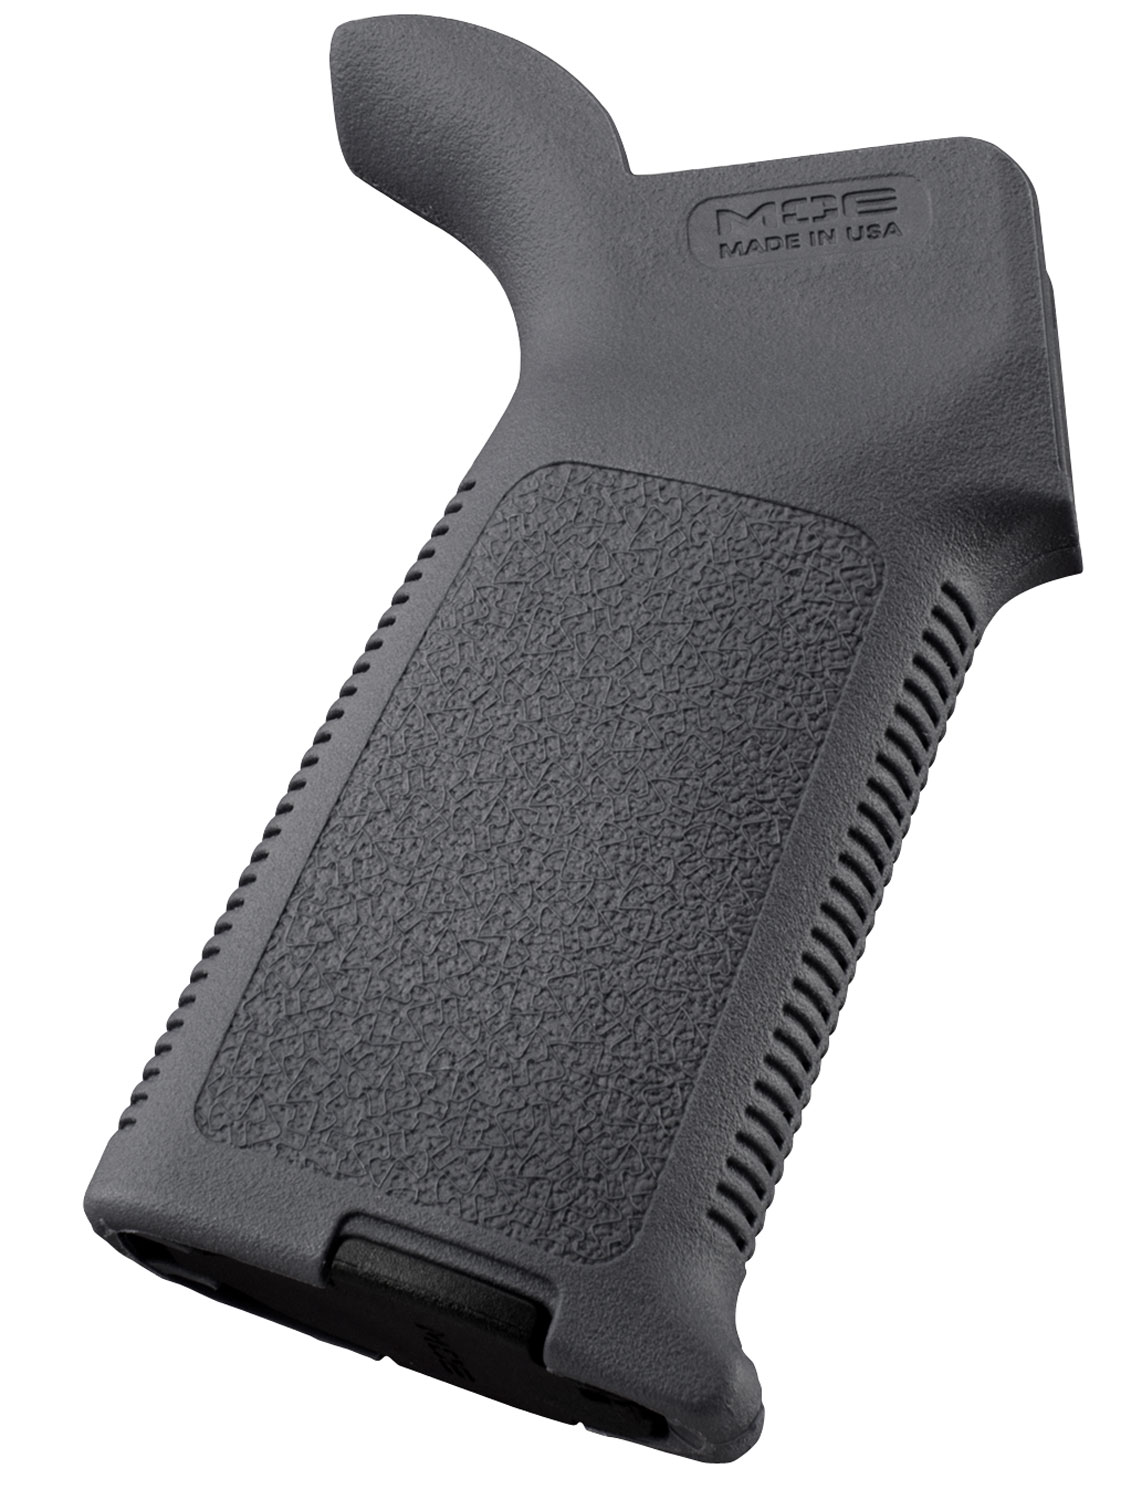 Magpul MAG415-GRY MOE  Pistol Grip Aggressive Textured Polymer Gray